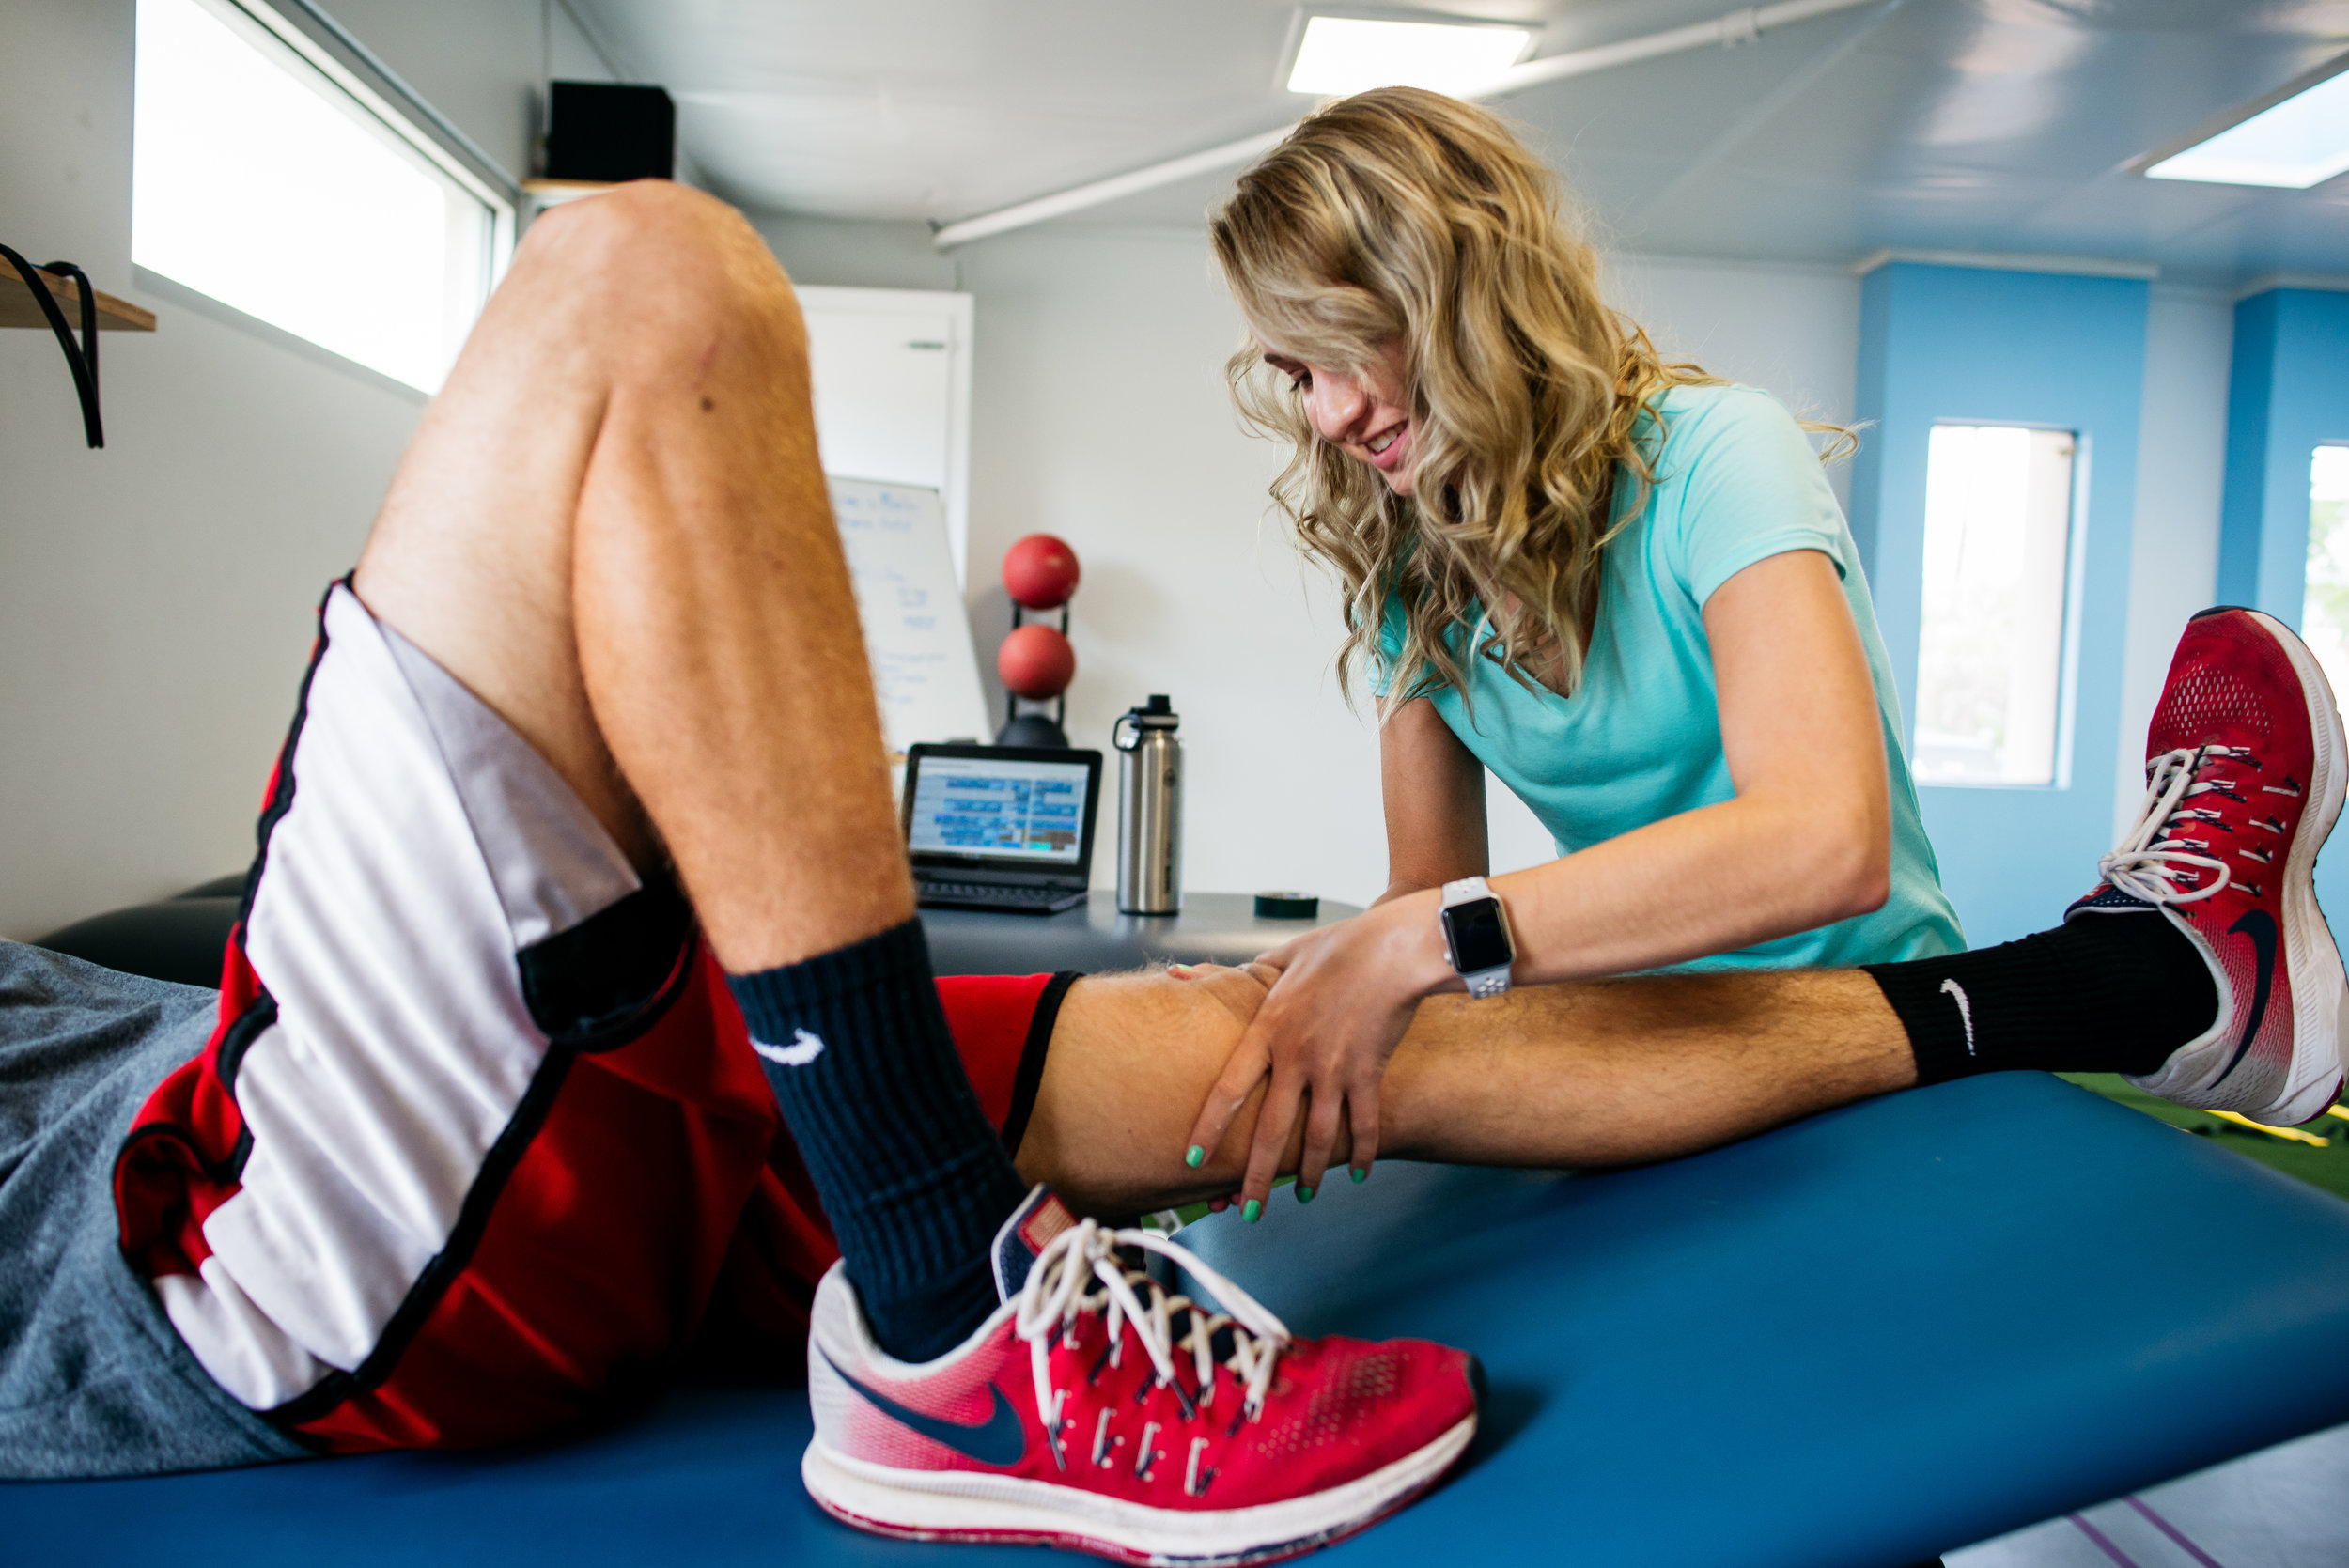 Return to Sport Training - By Julie holt, ATC...